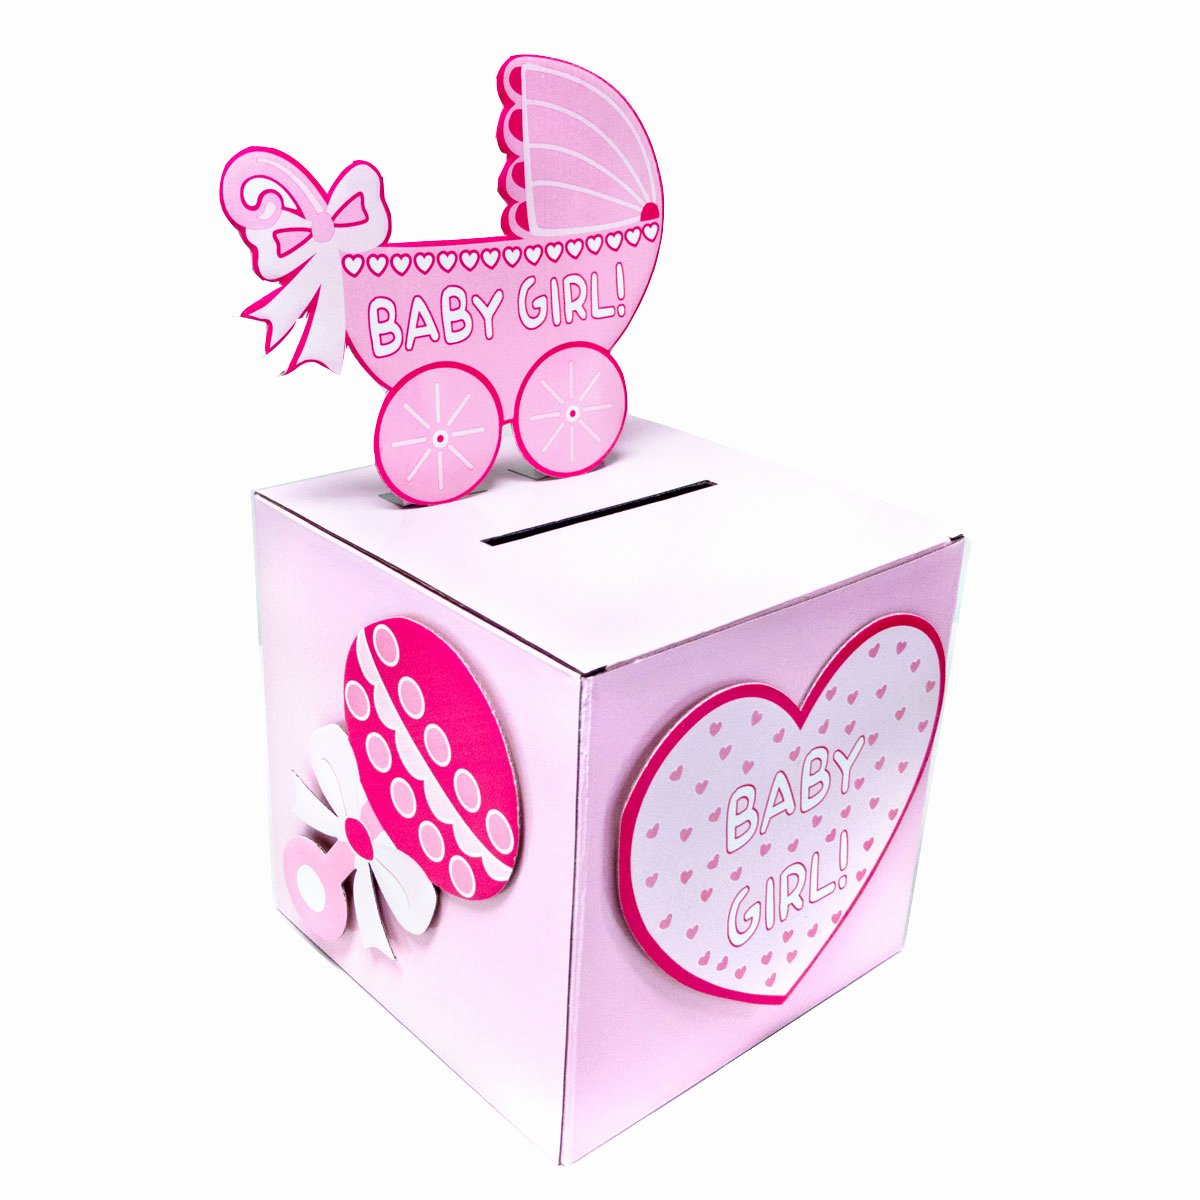 Gift Card Baby Showers Luxury Babyshower Wishing Well Card T or Money Box Boy Girl Party Ideas Cd415 1 Box